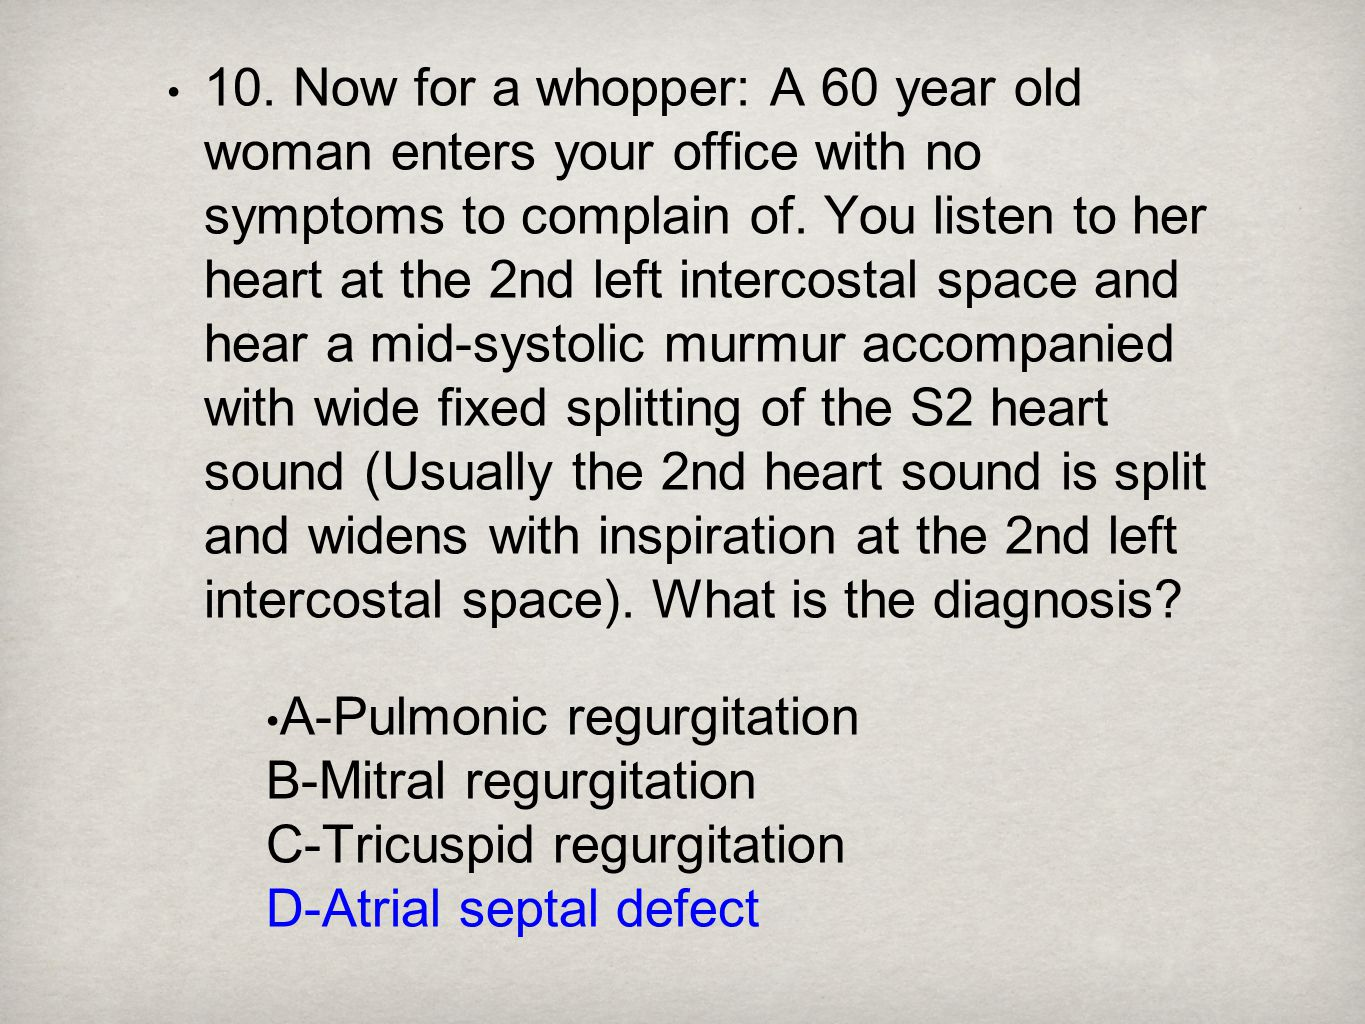 10. Now for a whopper: A 60 year old woman enters your office with no symptoms to complain of. You listen to her heart at the 2nd left intercostal space and hear a mid-systolic murmur accompanied with wide fixed splitting of the S2 heart sound (Usually the 2nd heart sound is split and widens with inspiration at the 2nd left intercostal space). What is the diagnosis